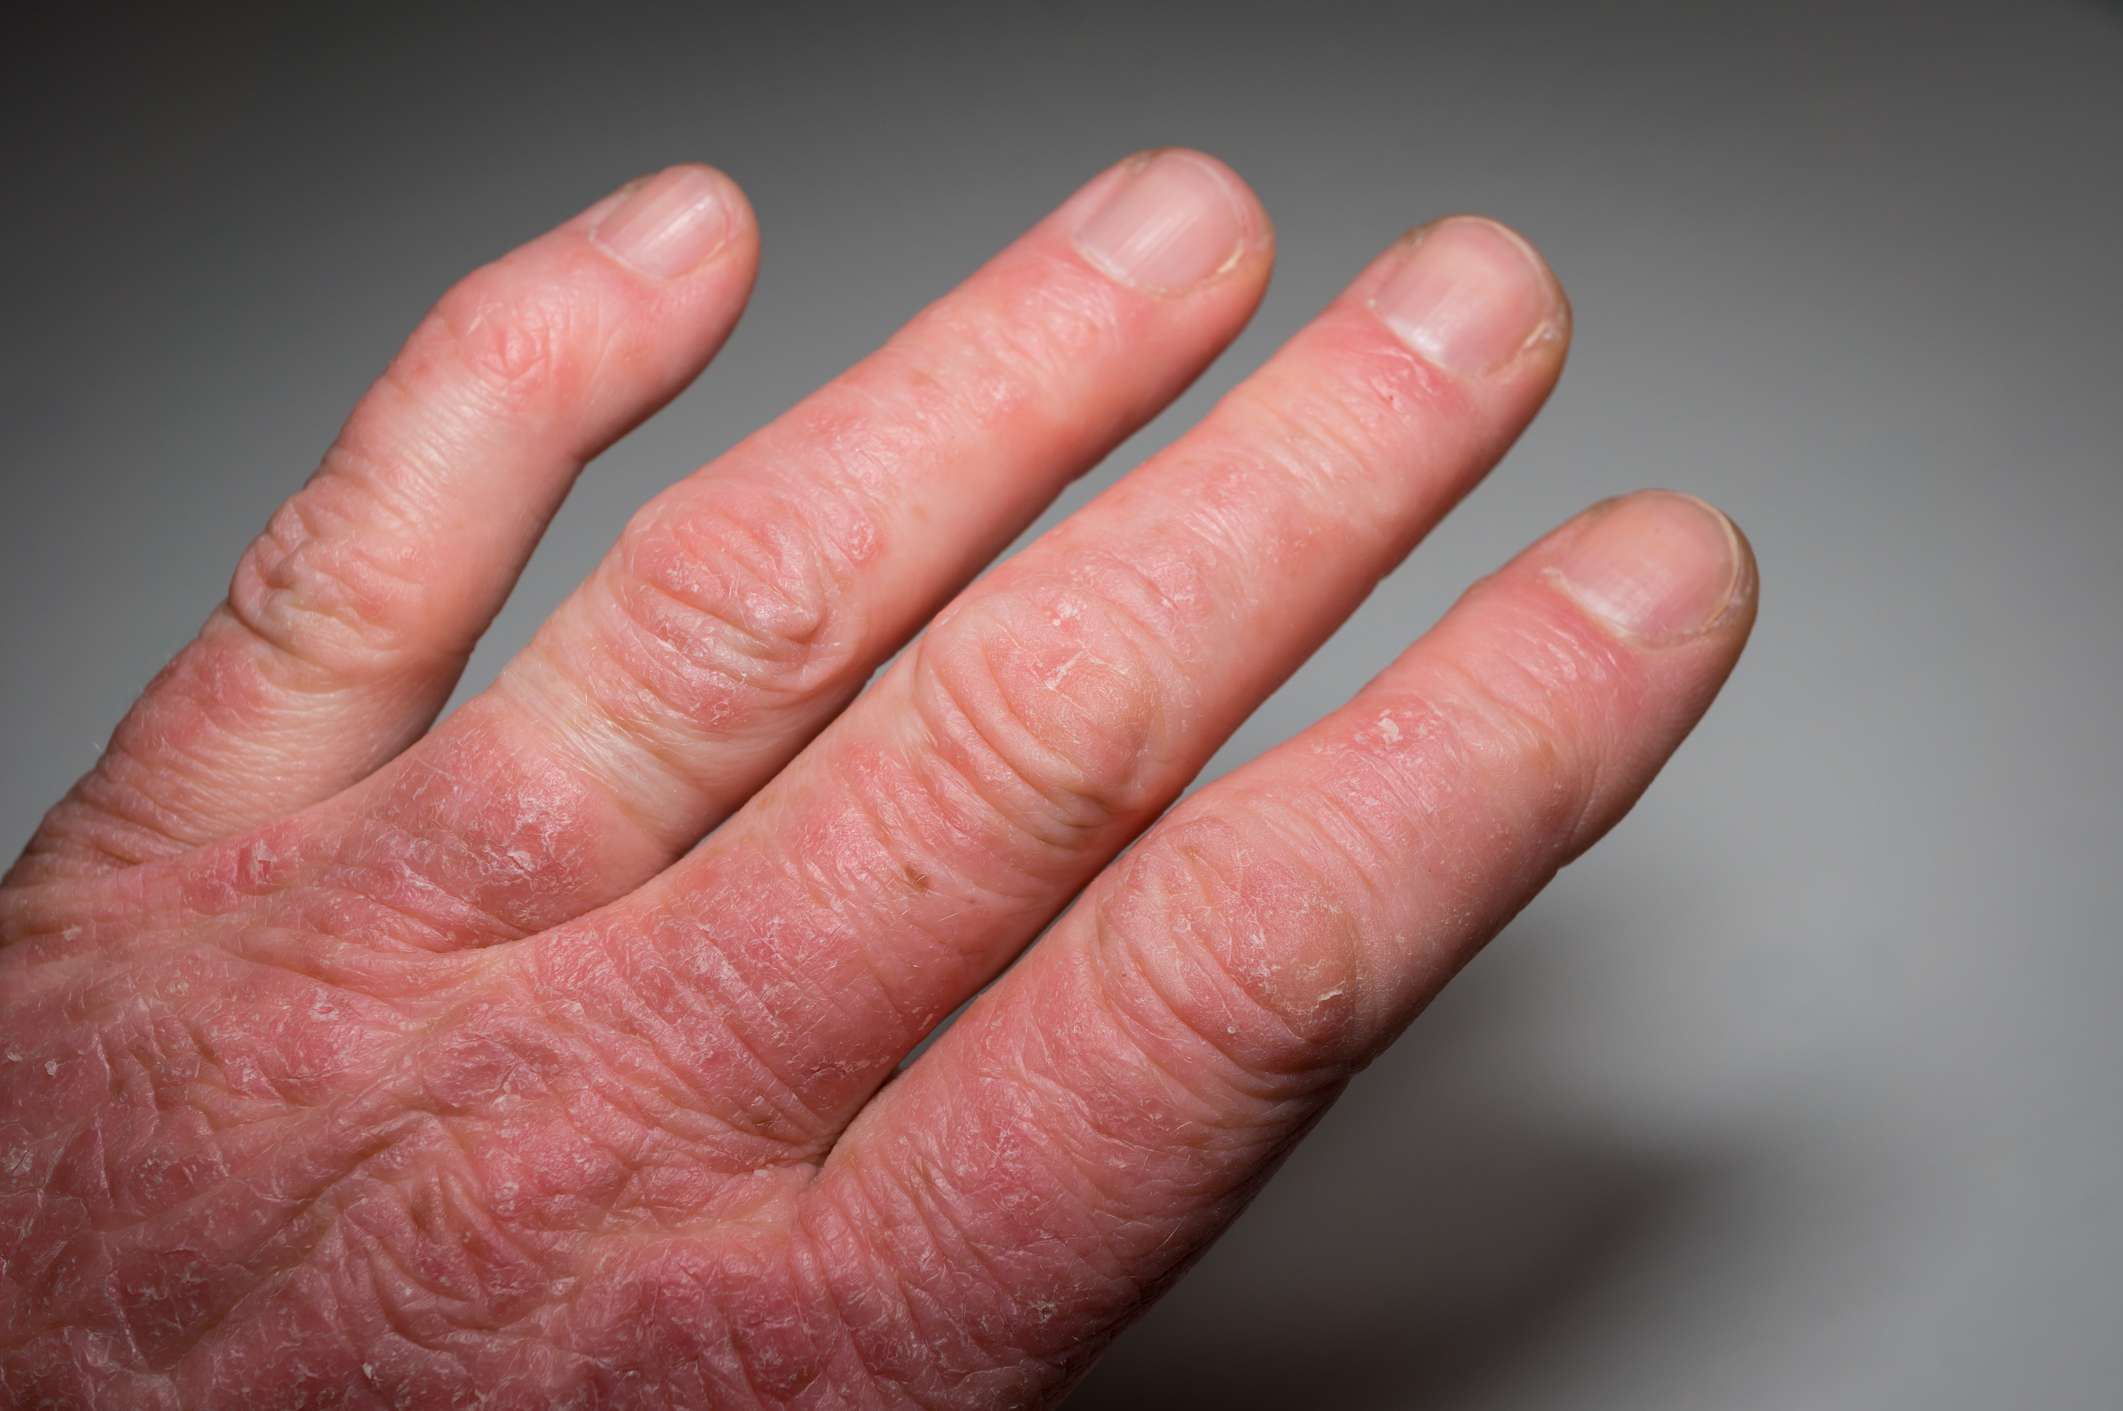 Hand of a psoriasis patient close-up. Psoriatic arthritis. Joint deformation and inflammation on the skin